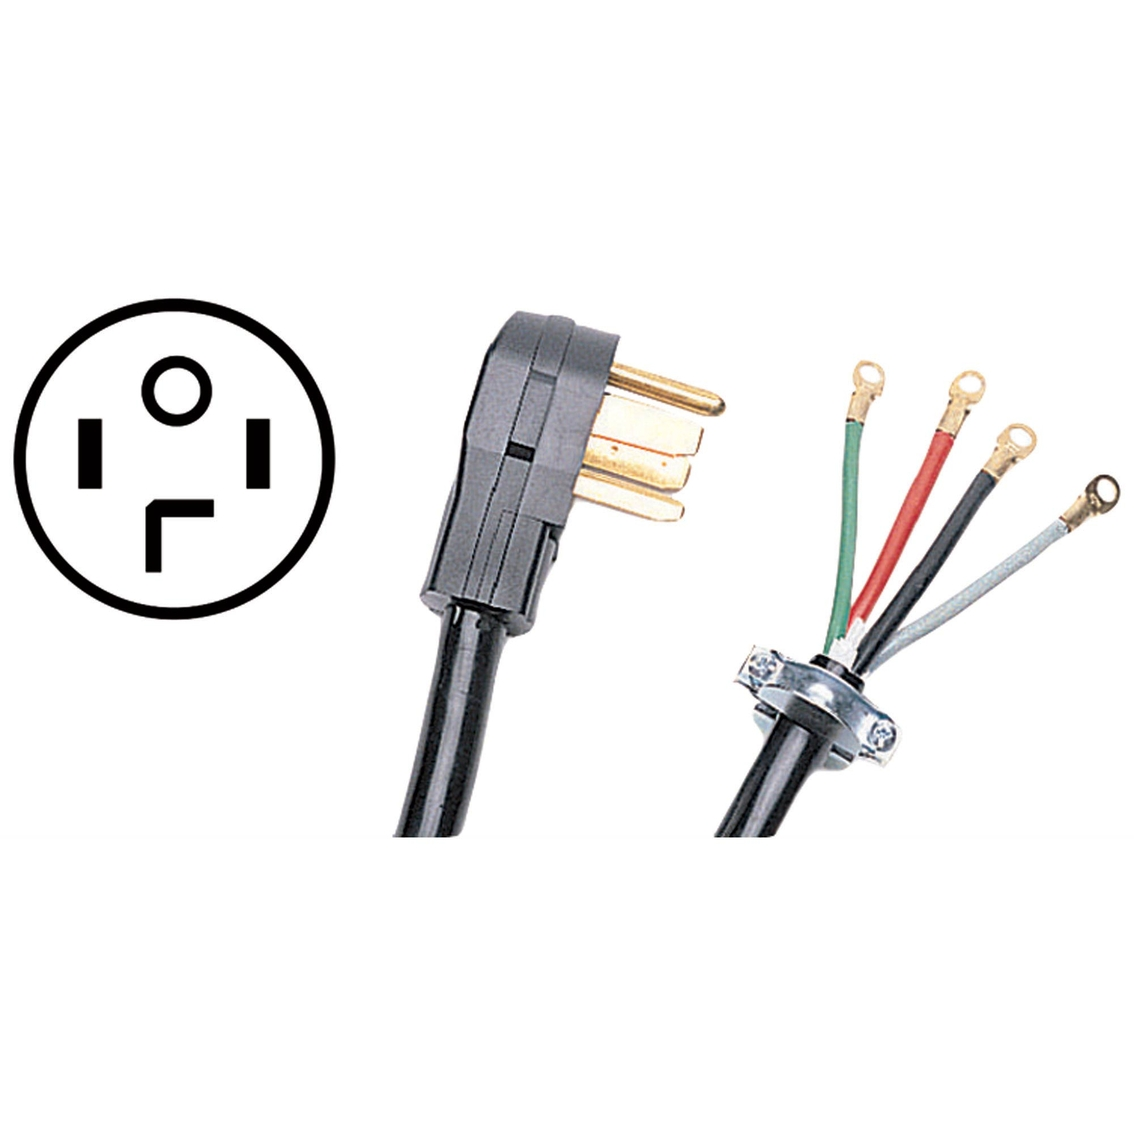 Peachy Certified Appliance 4 Ft 4 Wire Petra Dryer Cord Washers Dryers Wiring Digital Resources Jebrpkbiperorg